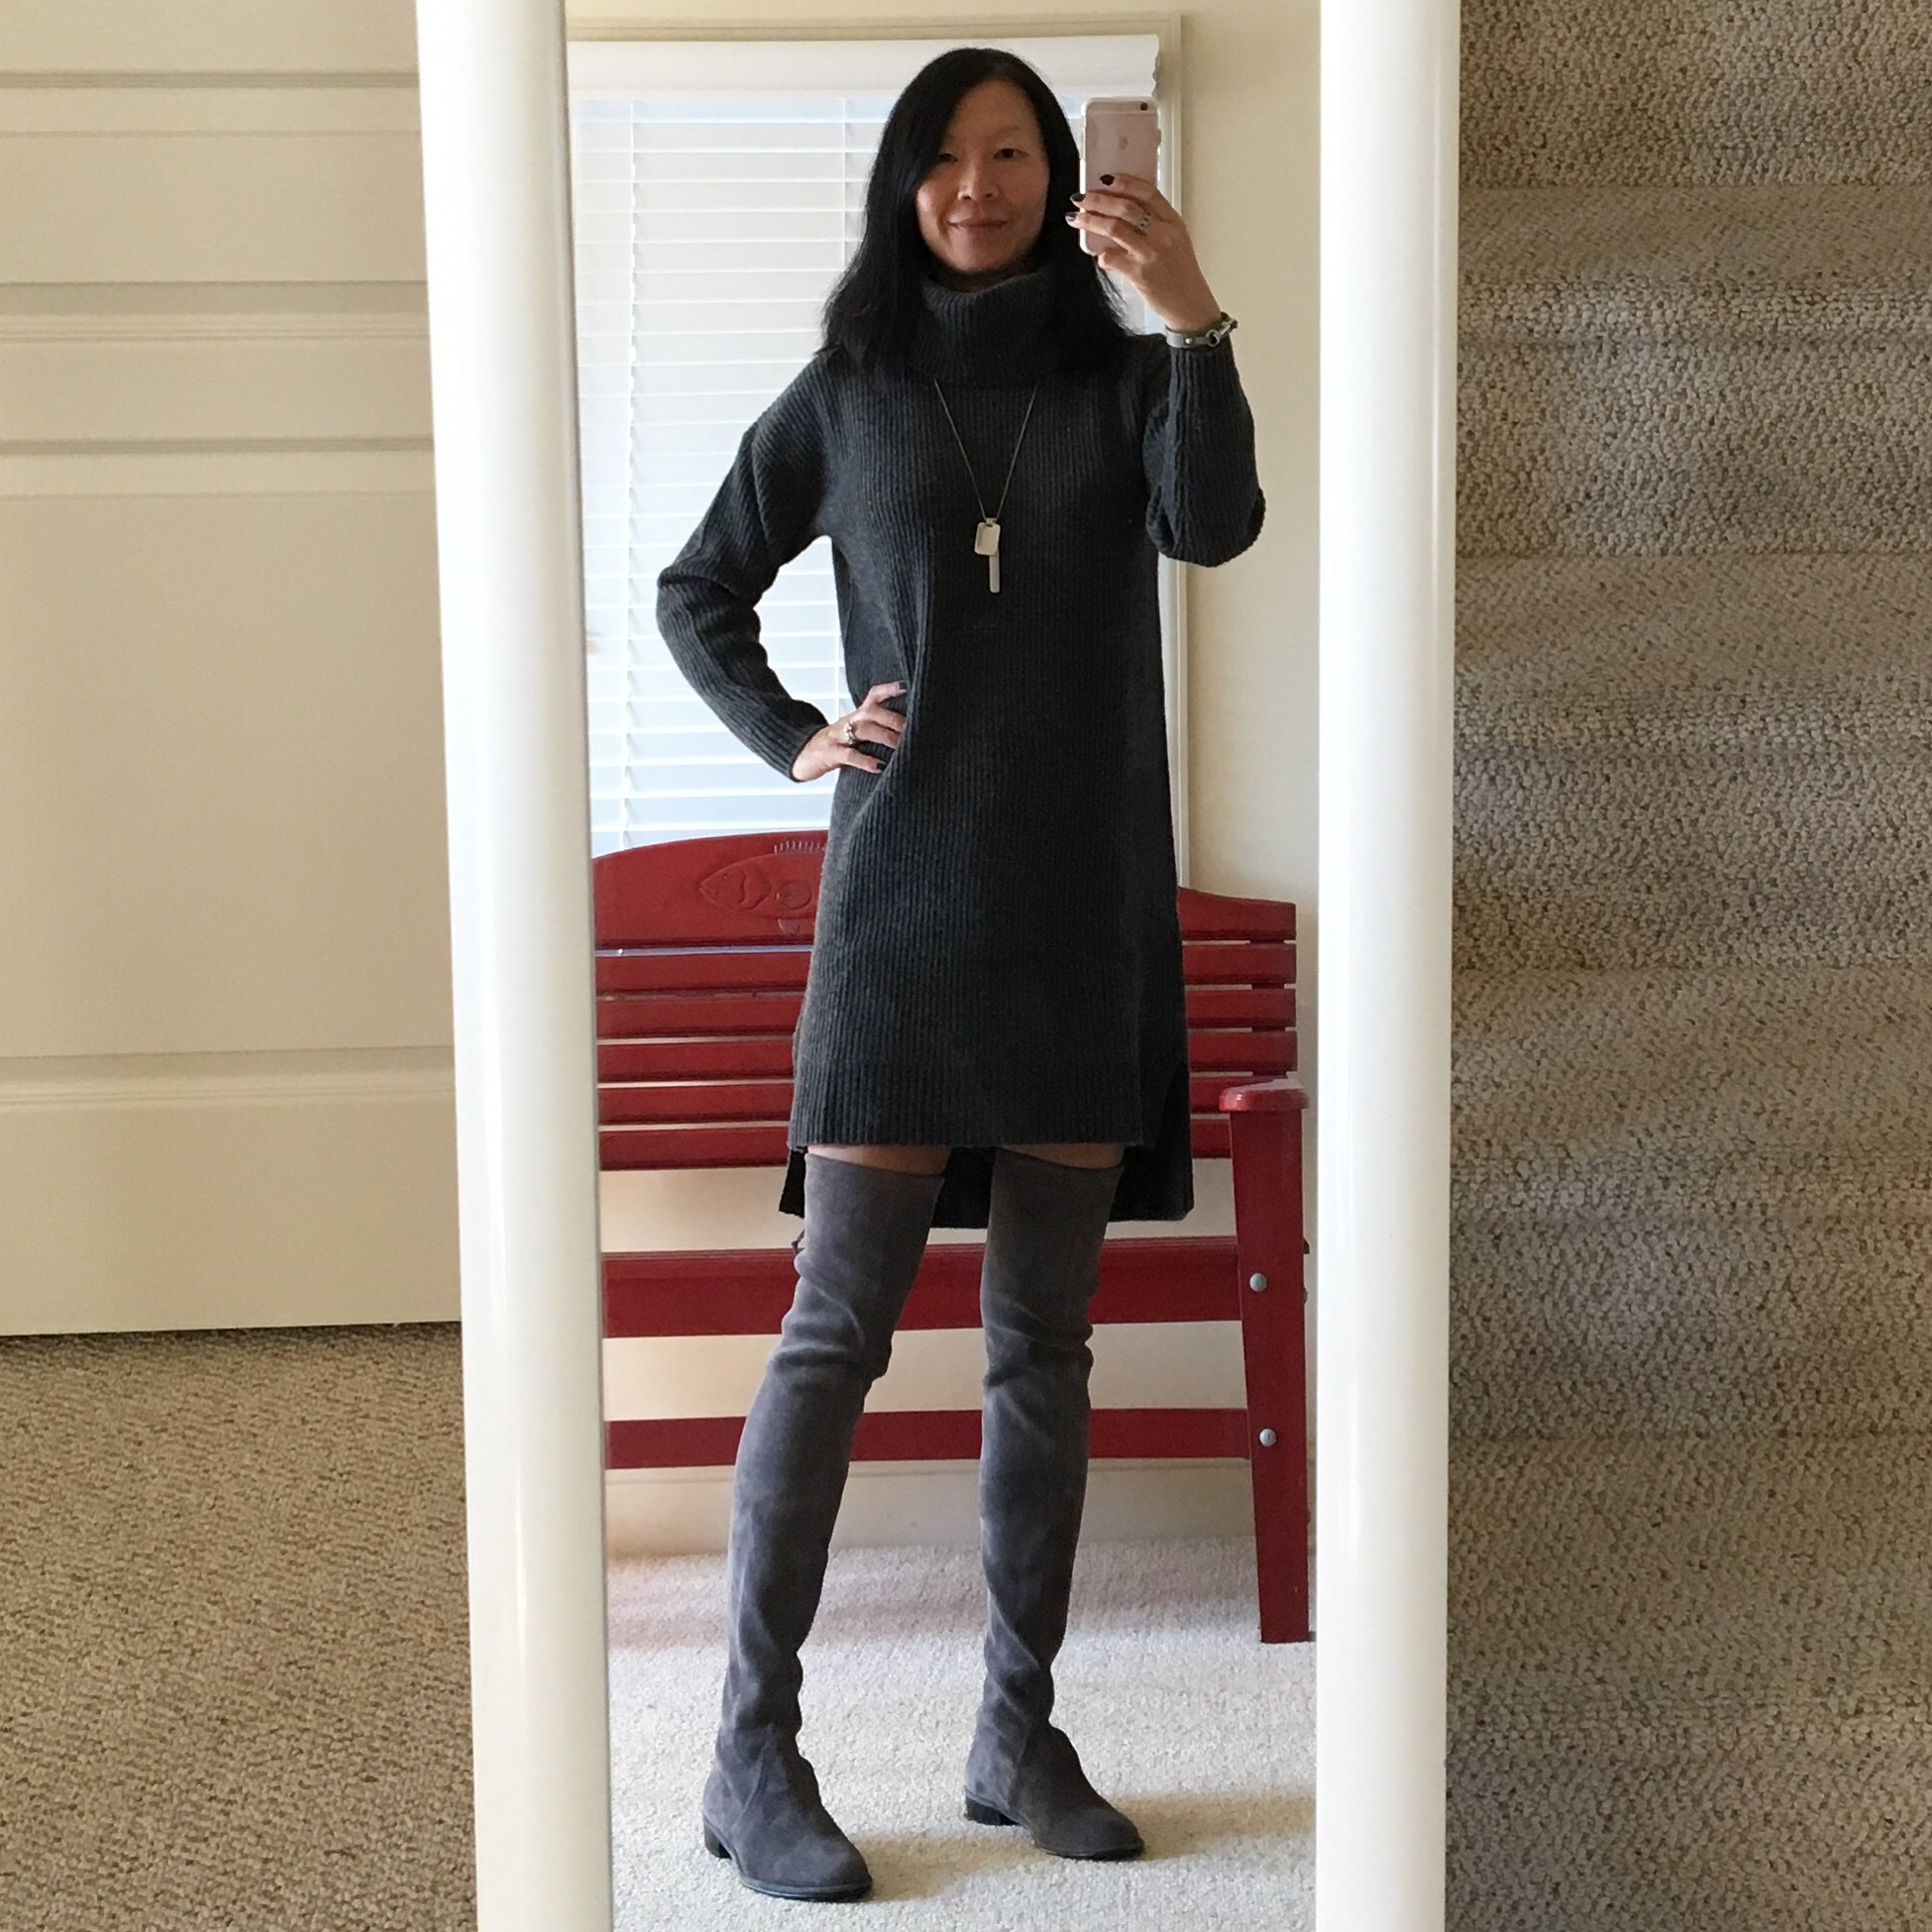 760fcb283cd ... ox (similar)  Stuart Weitzman  Lowland  over-the-knee boots in londra  suede  Rebecca Minkoff dog clip leather cuff bracelet in grey (old